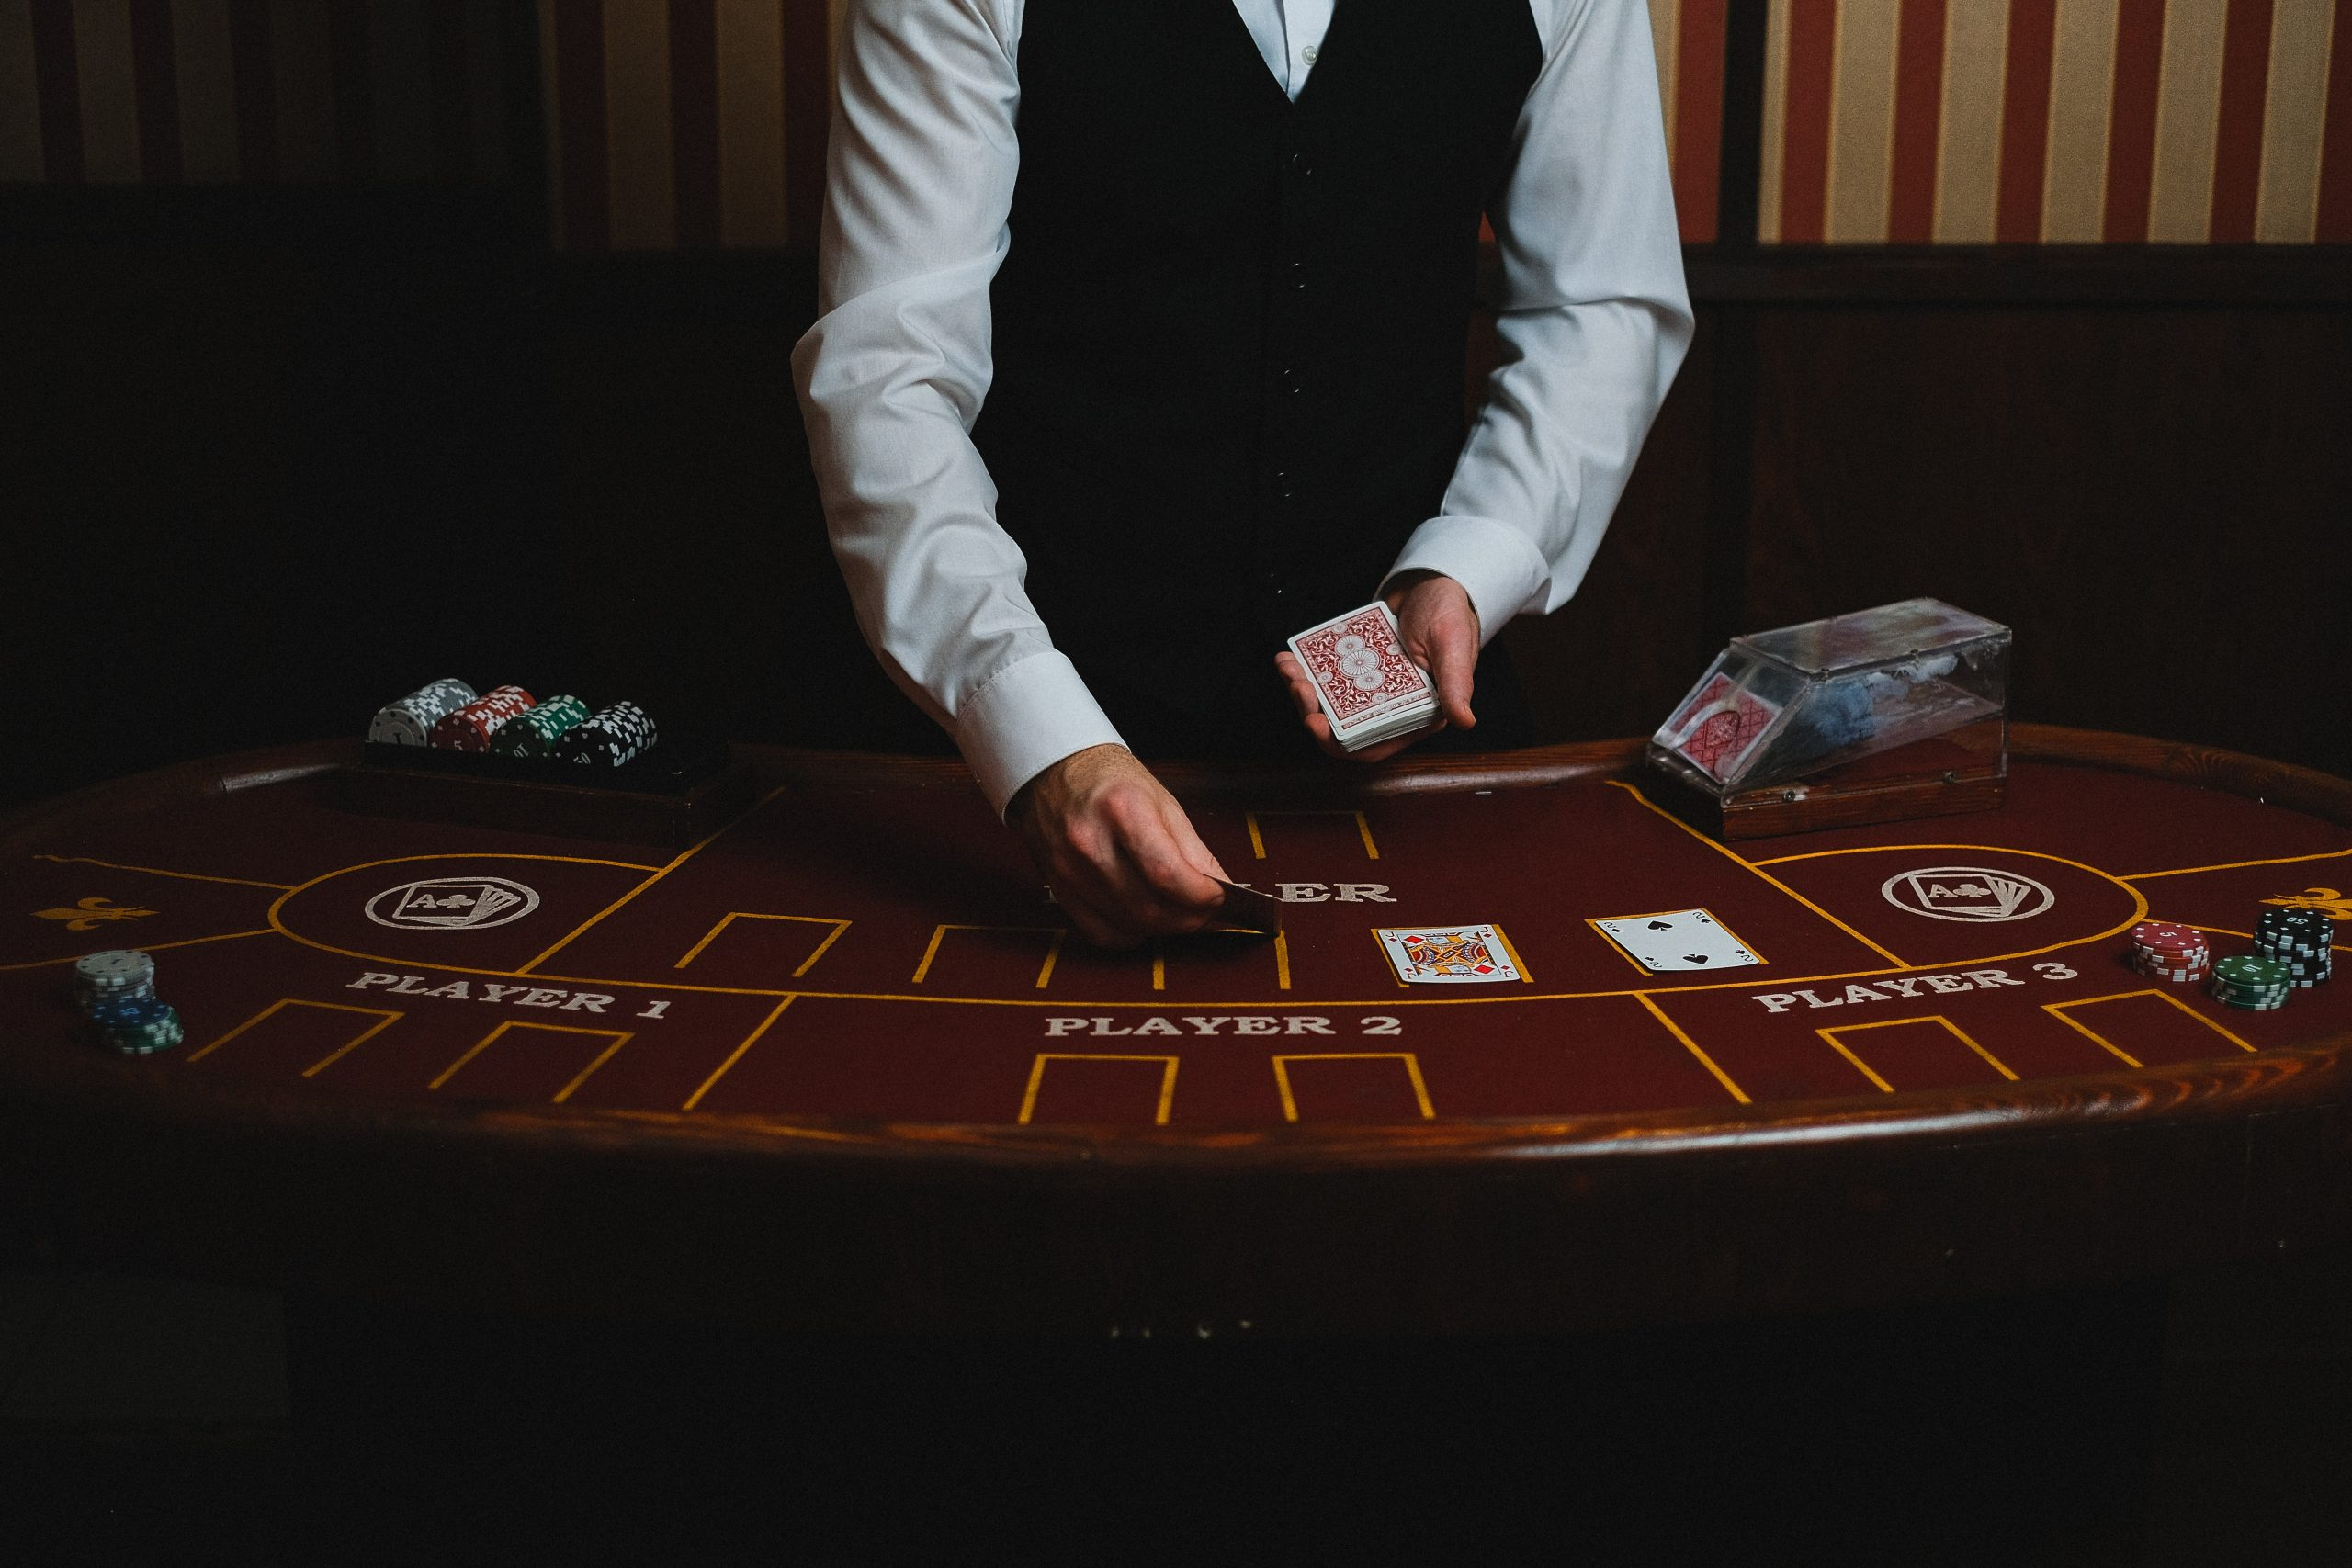 How to Win at Baccarat? – 3 Major Tips